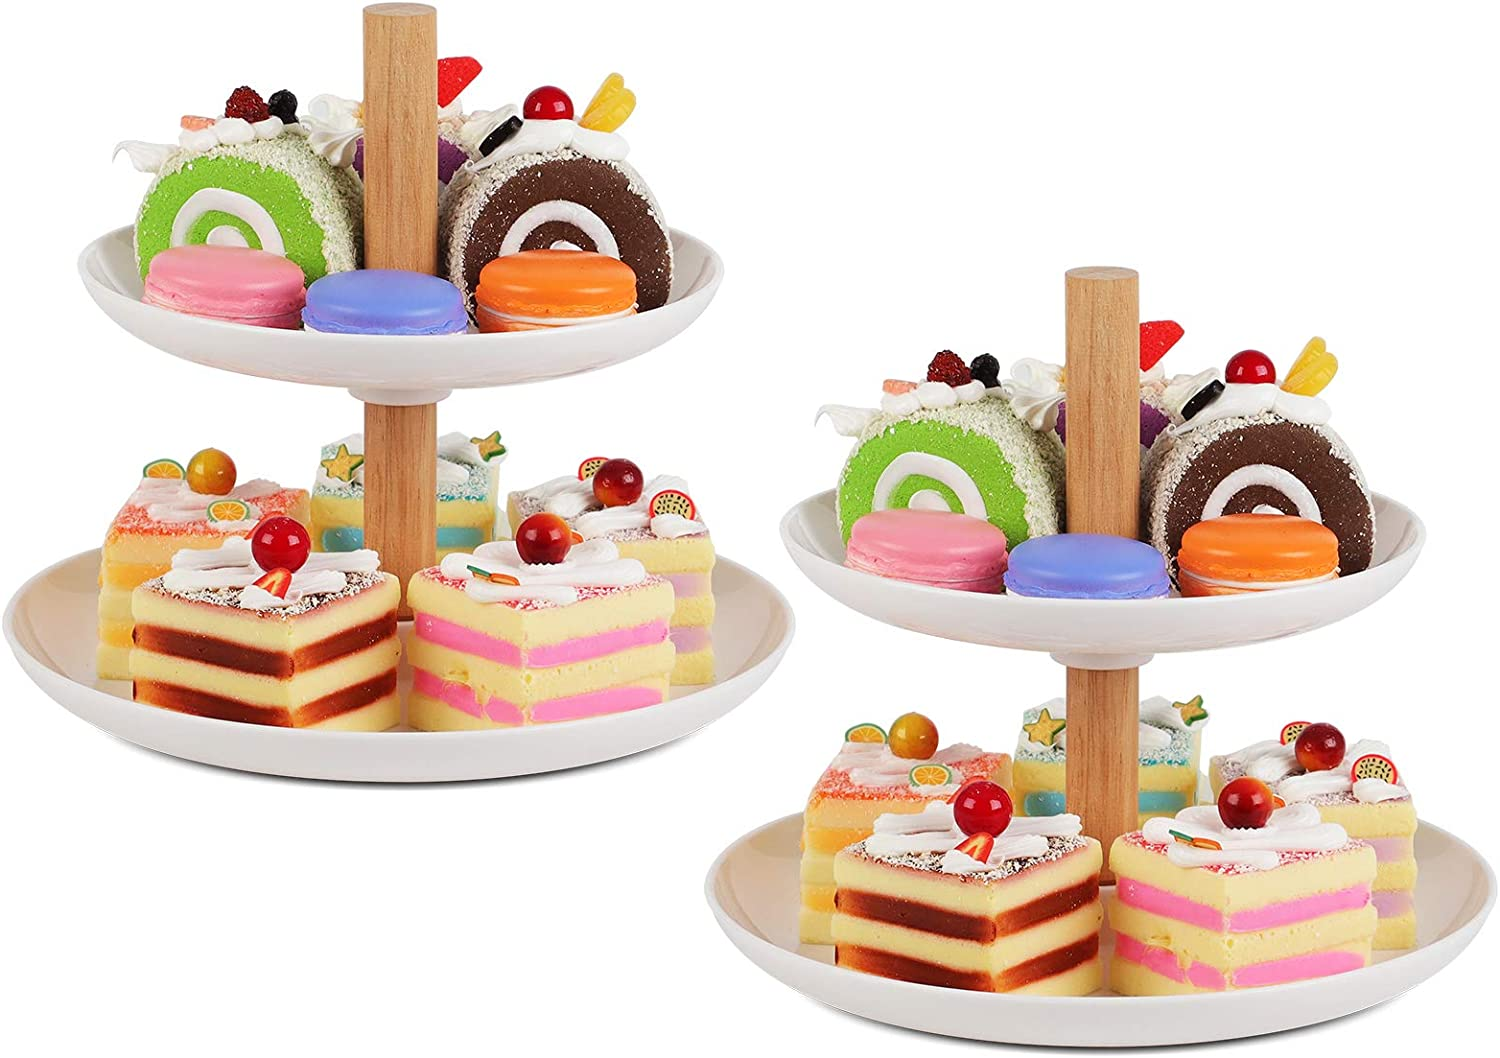 Kootek 2 Pack Dessert Stand Cupcake Stands, White Serving Trays Plastic Cake Stand Reusable Pastry Holder Fruit Display Plate for Wedding Birthday Baby Shower Holiday Christmas Tea Party Decorating